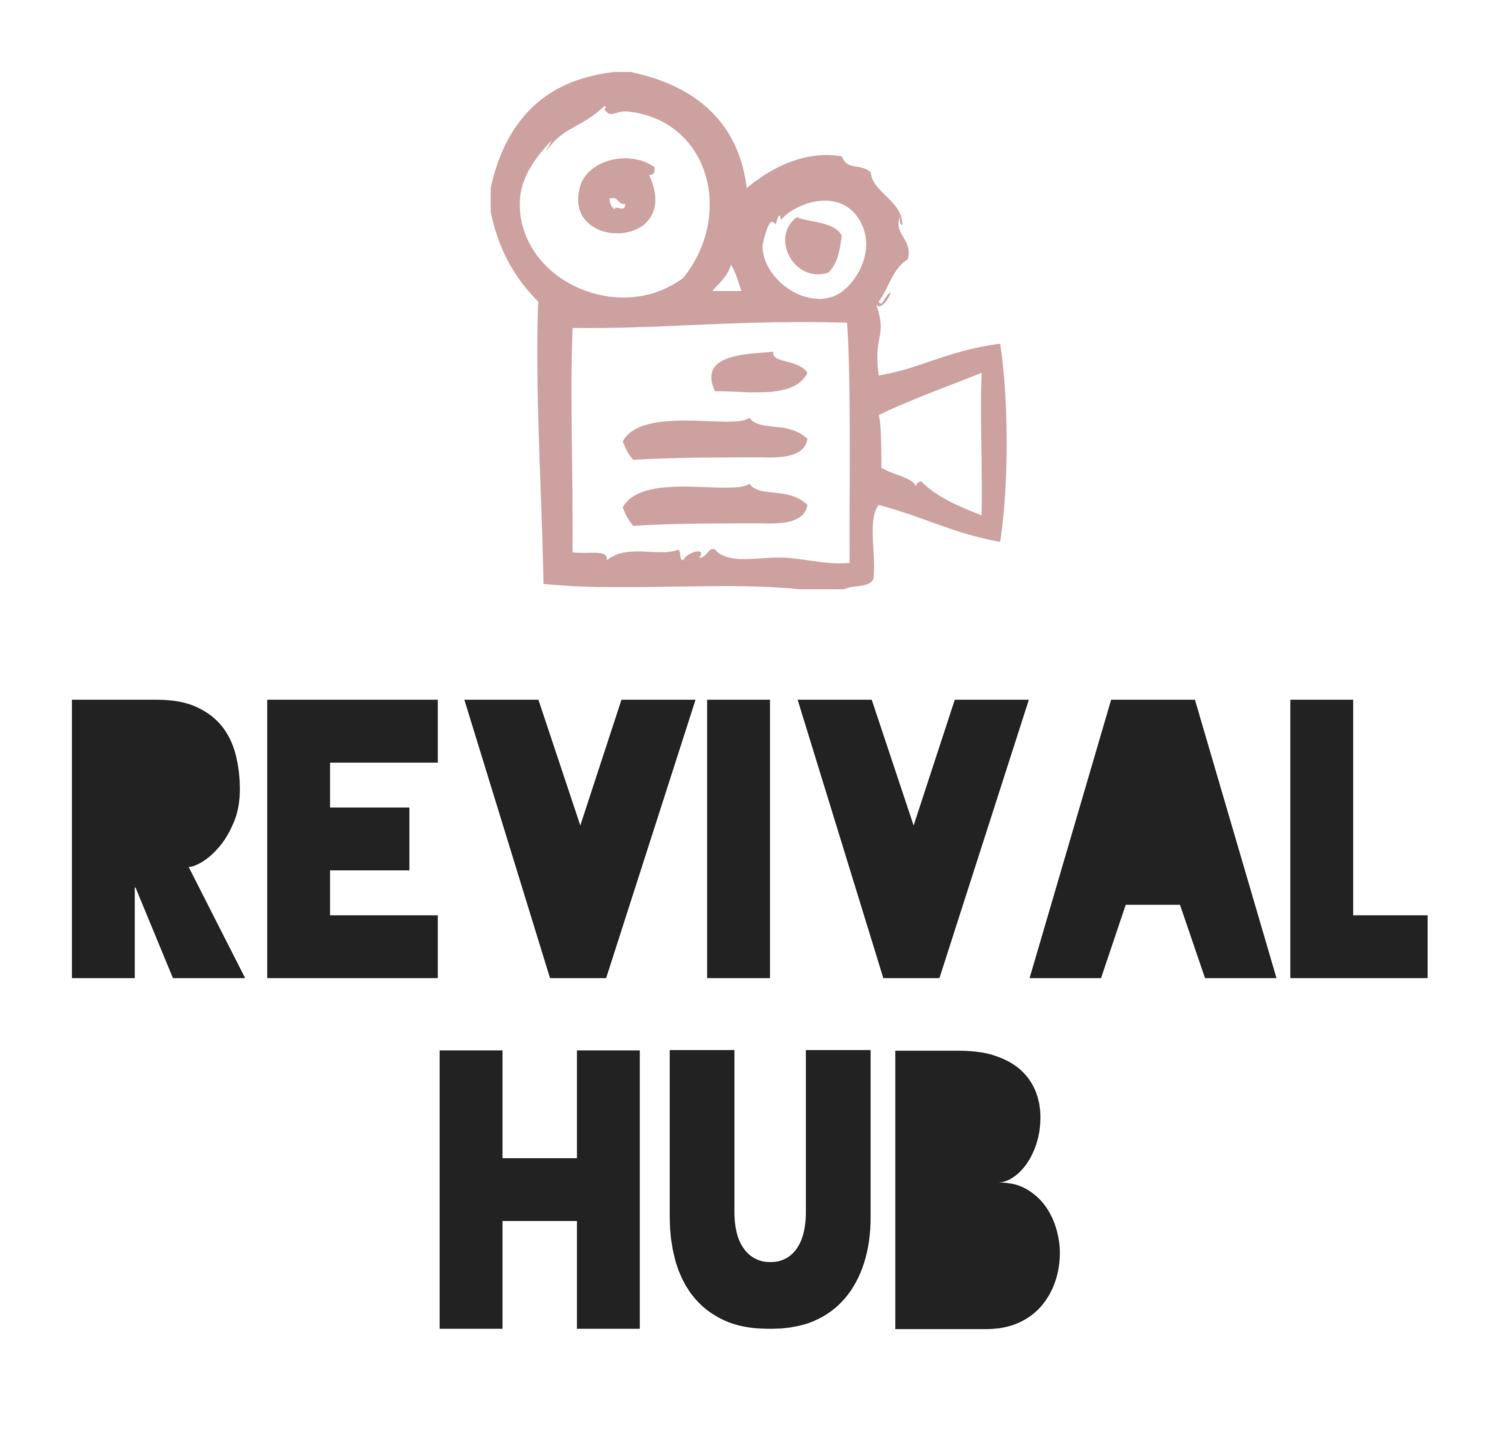 Revival Hub Los Angeles